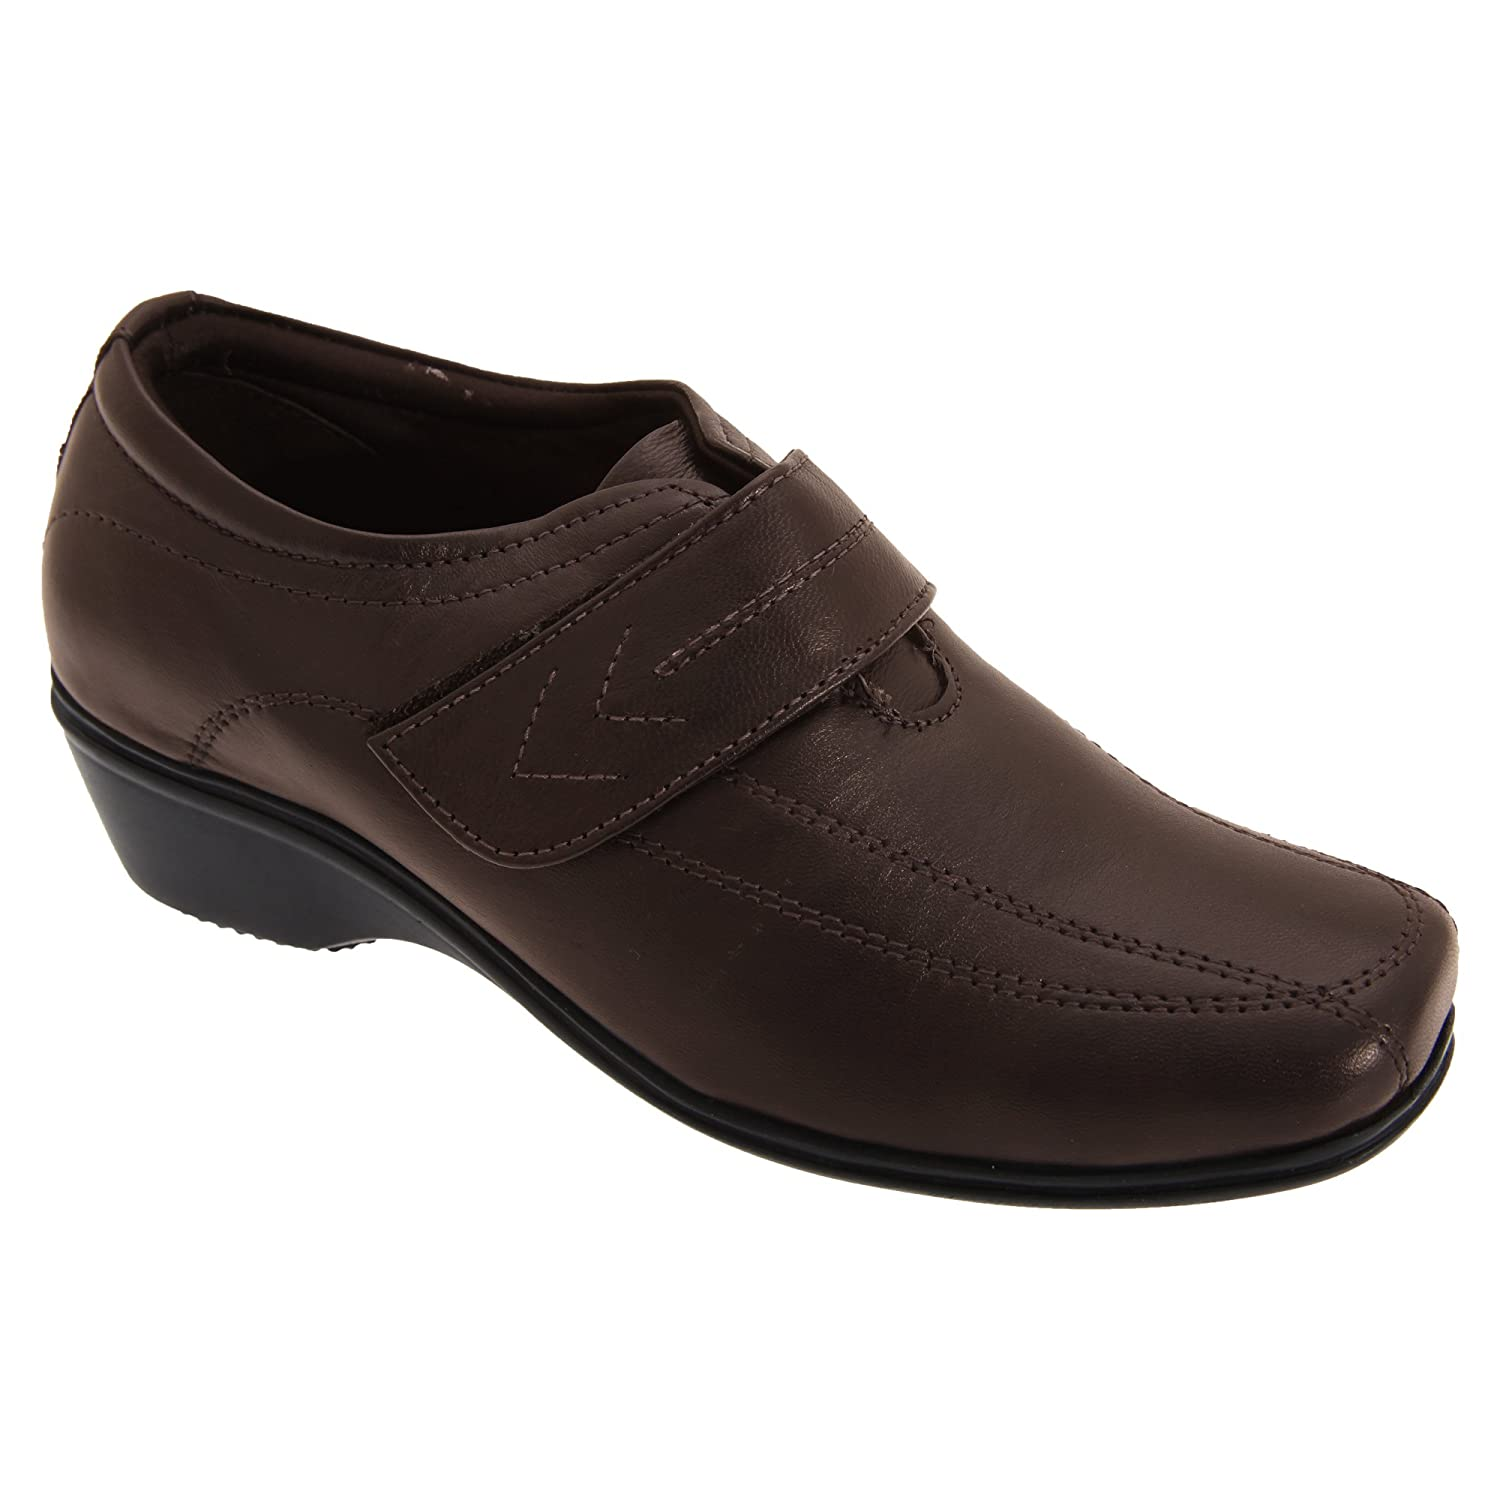 Mod Comfys Womens//Ladies Touch Fastening Softie Leather Casual Shoes